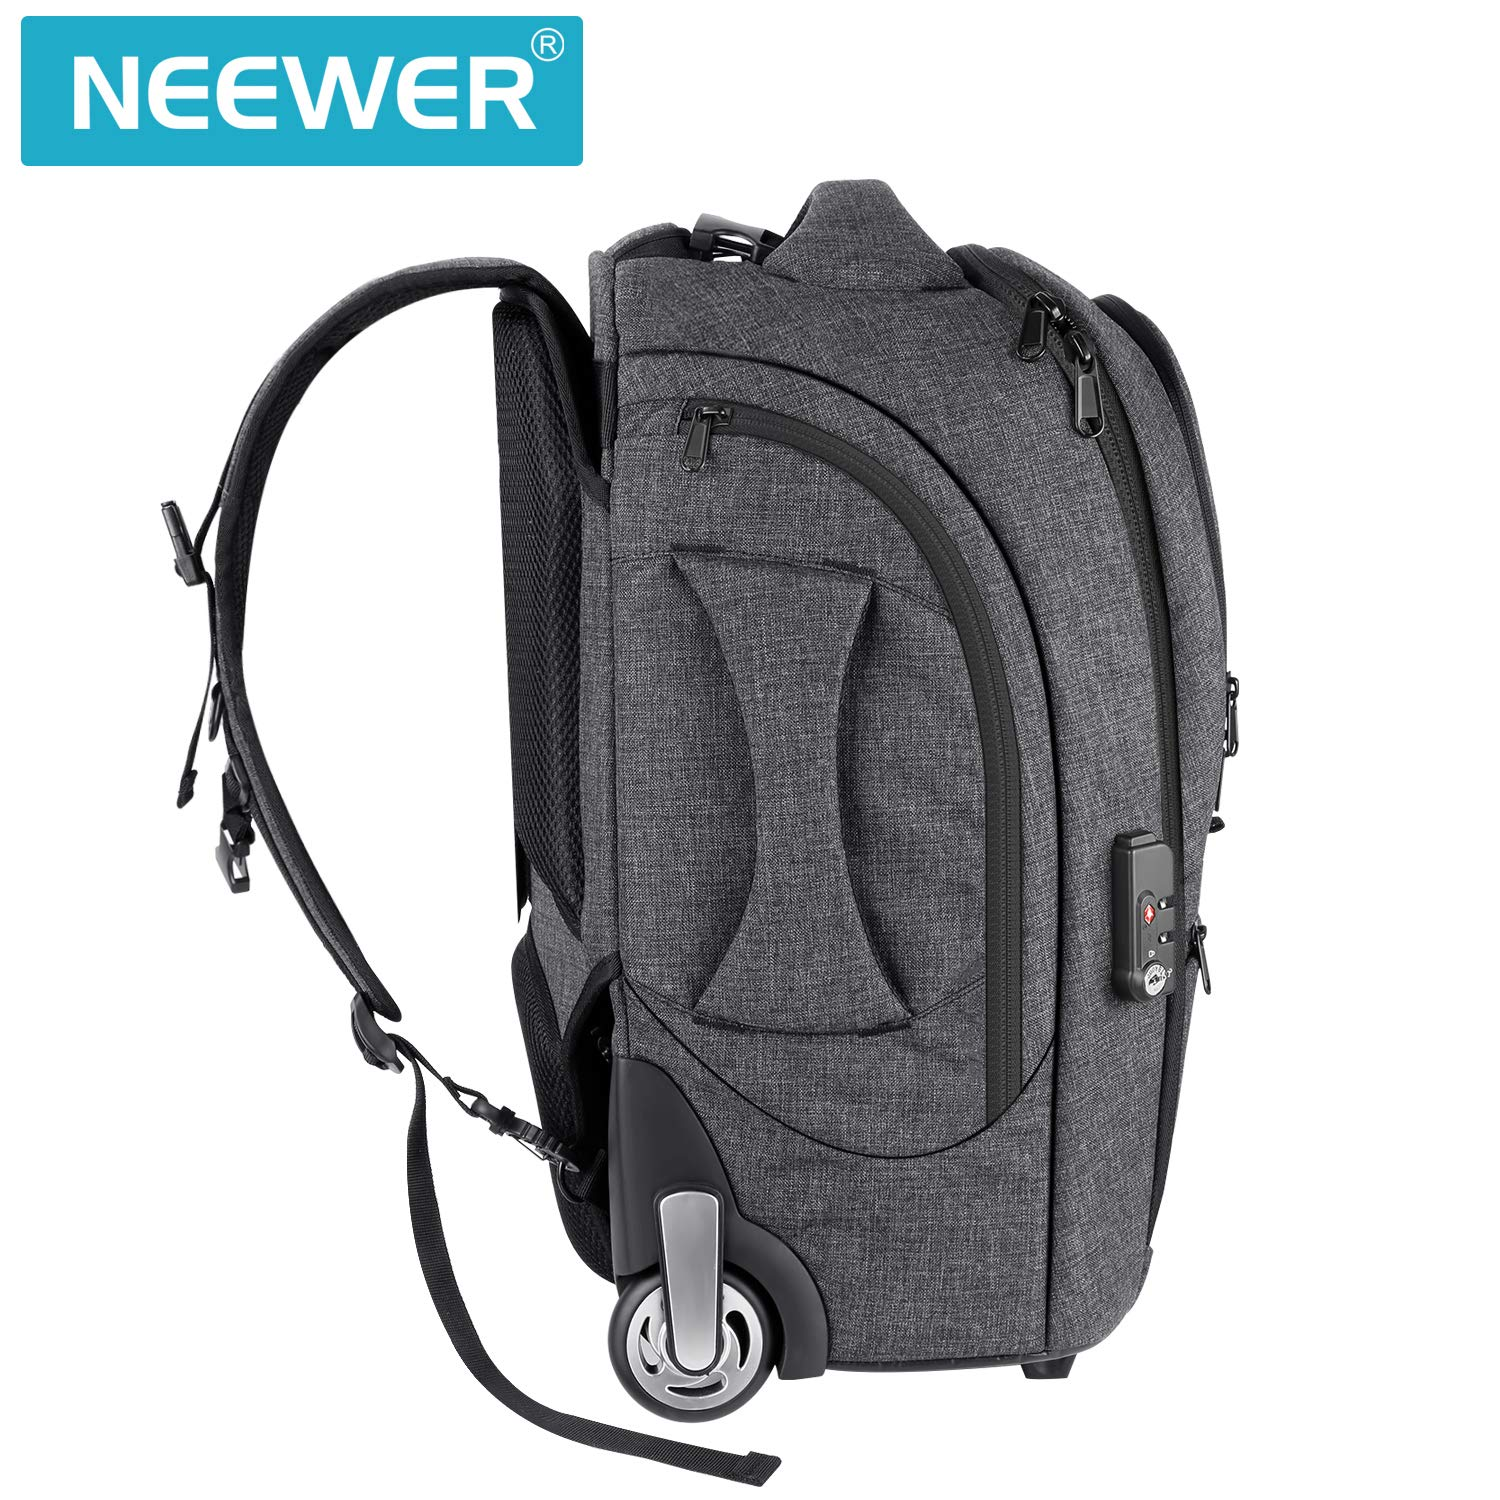 Neewer 2-in-1 Camera Rolling Backpack Trolley Case with TSA Lock, Anti-Shock Detachable Padded Compartment, Hidden Pull Bar, Durable, Waterproof for Lens, Lens Hood, and Tablet (Grey/Red) by Neewer (Image #3)